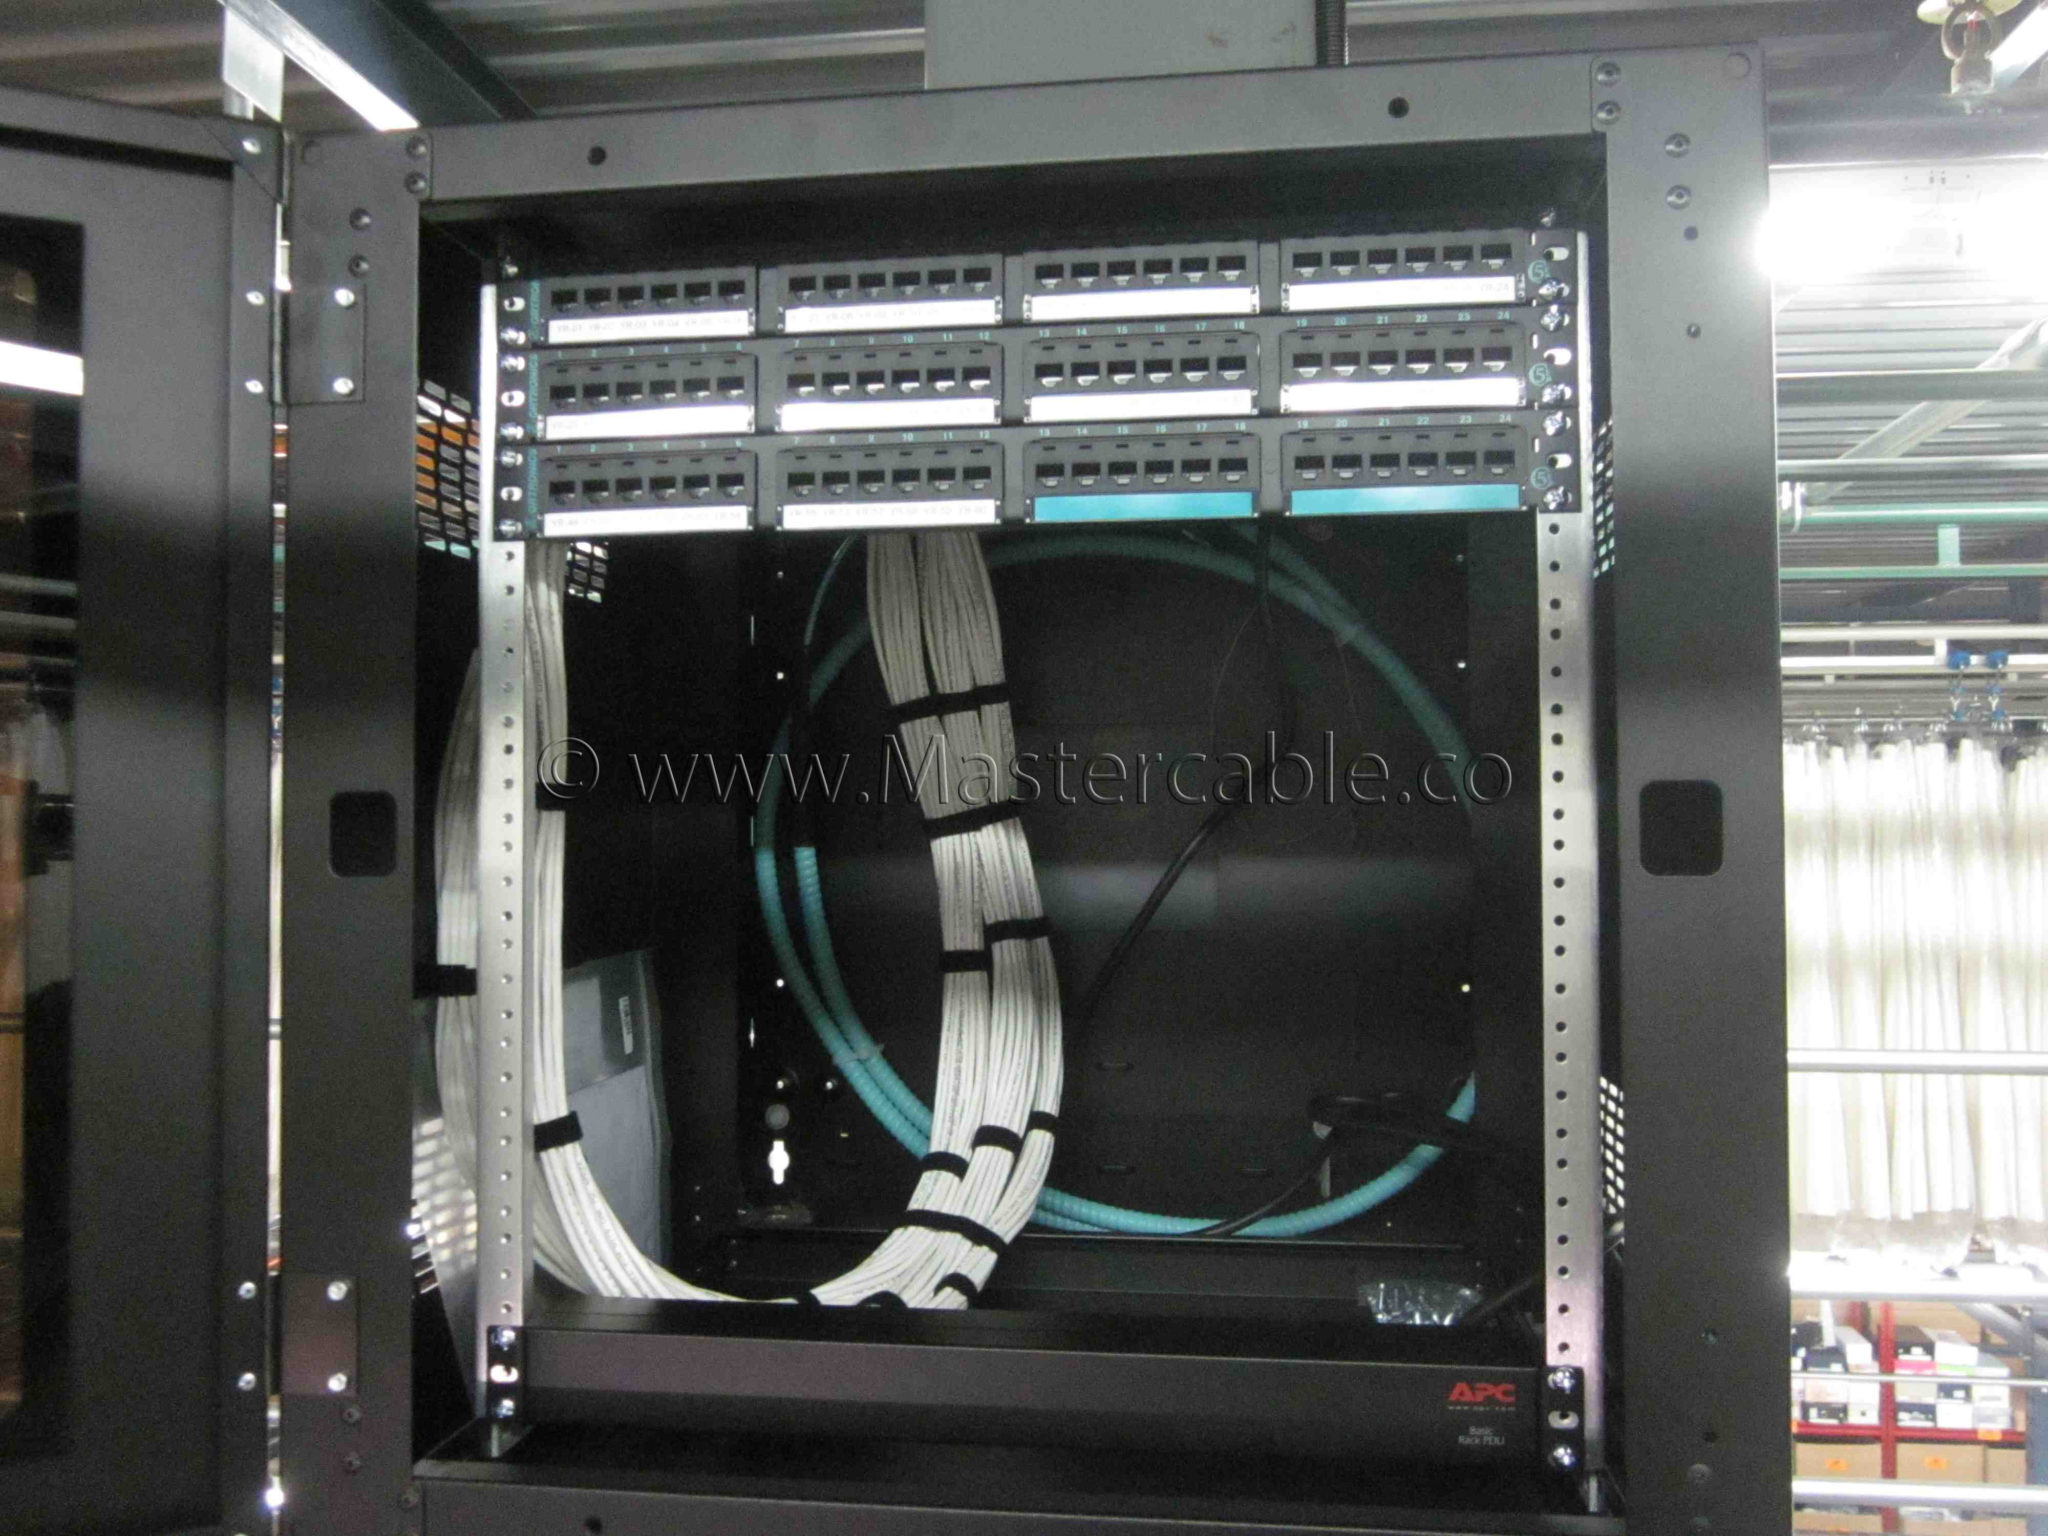 Voice And Data Structured Cabling Ny Nj Dallas Fort Worth Dfw Contact Us To Learn More About Our Wiring Services At Mastercable We Offer A Variety Of Solutions All Related Depending On Your Network Needs Budget